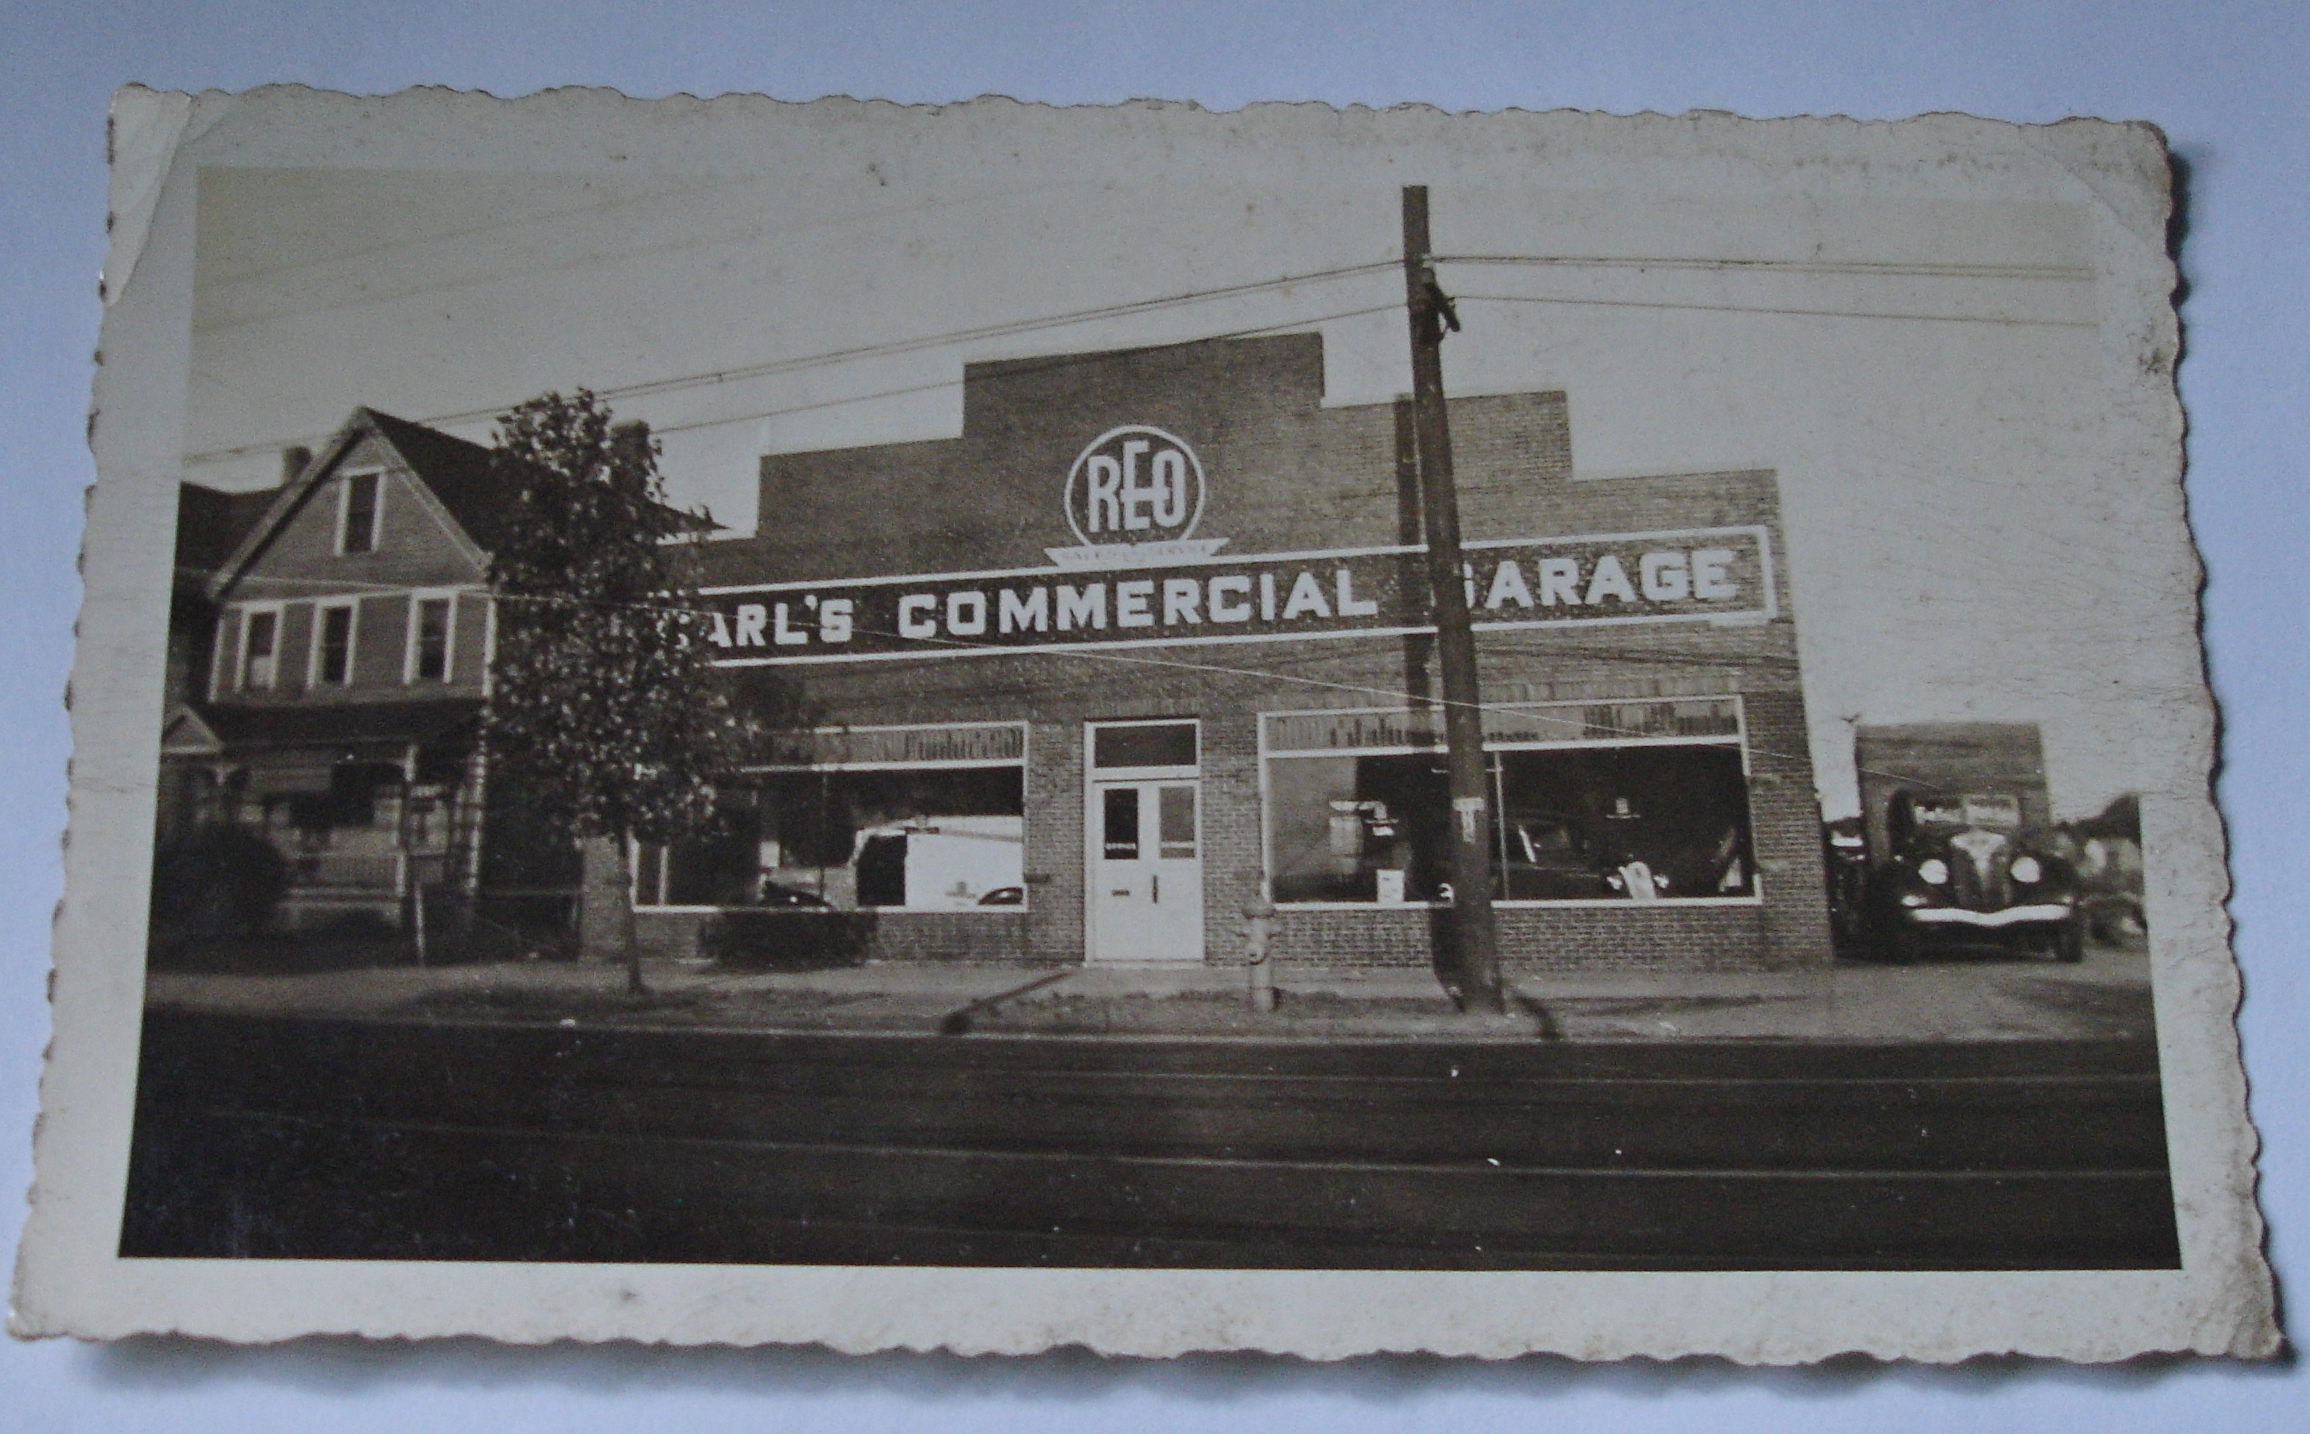 Carl's Commercial Garage, as it appeared in 1945. Photograph a few years later by Barbara Florio Graham. (Courtesy of Barbara Florio Graham)